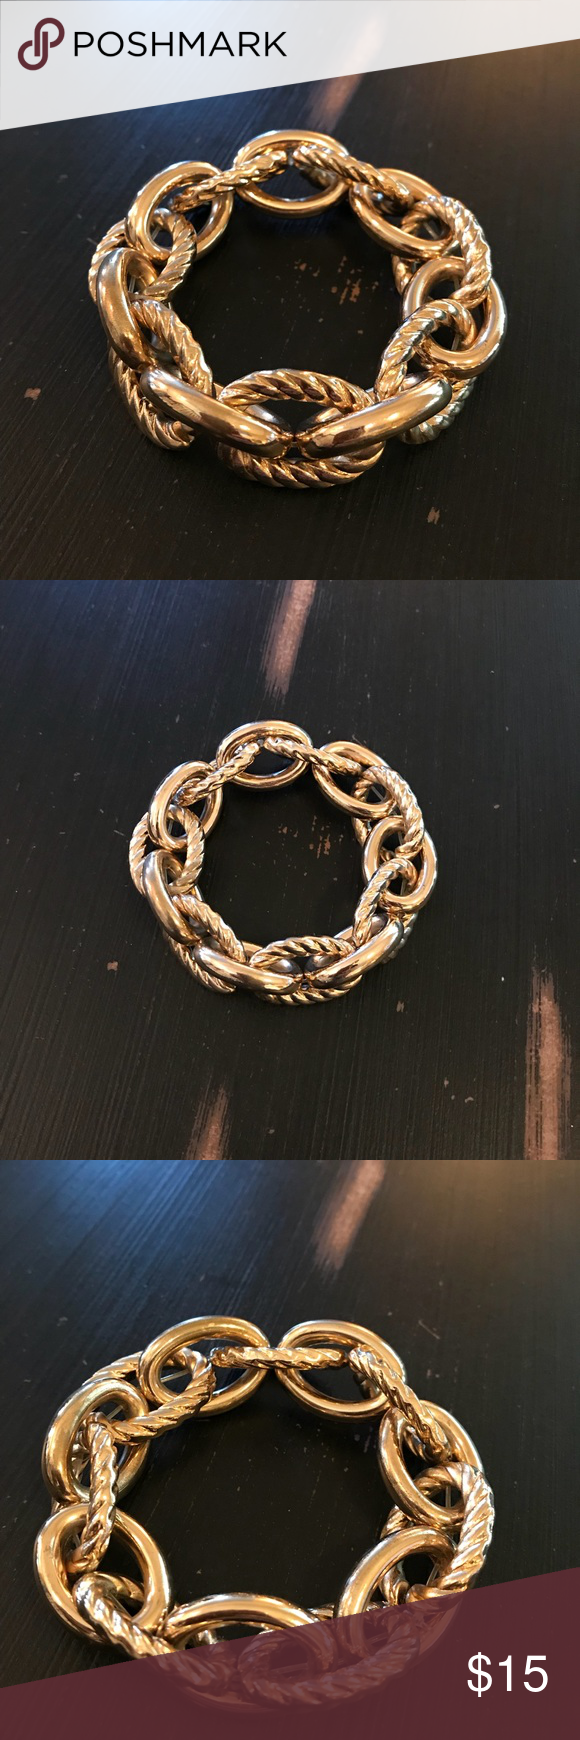 Chunky gold rope bracelet jewelry bracelets conditioning and